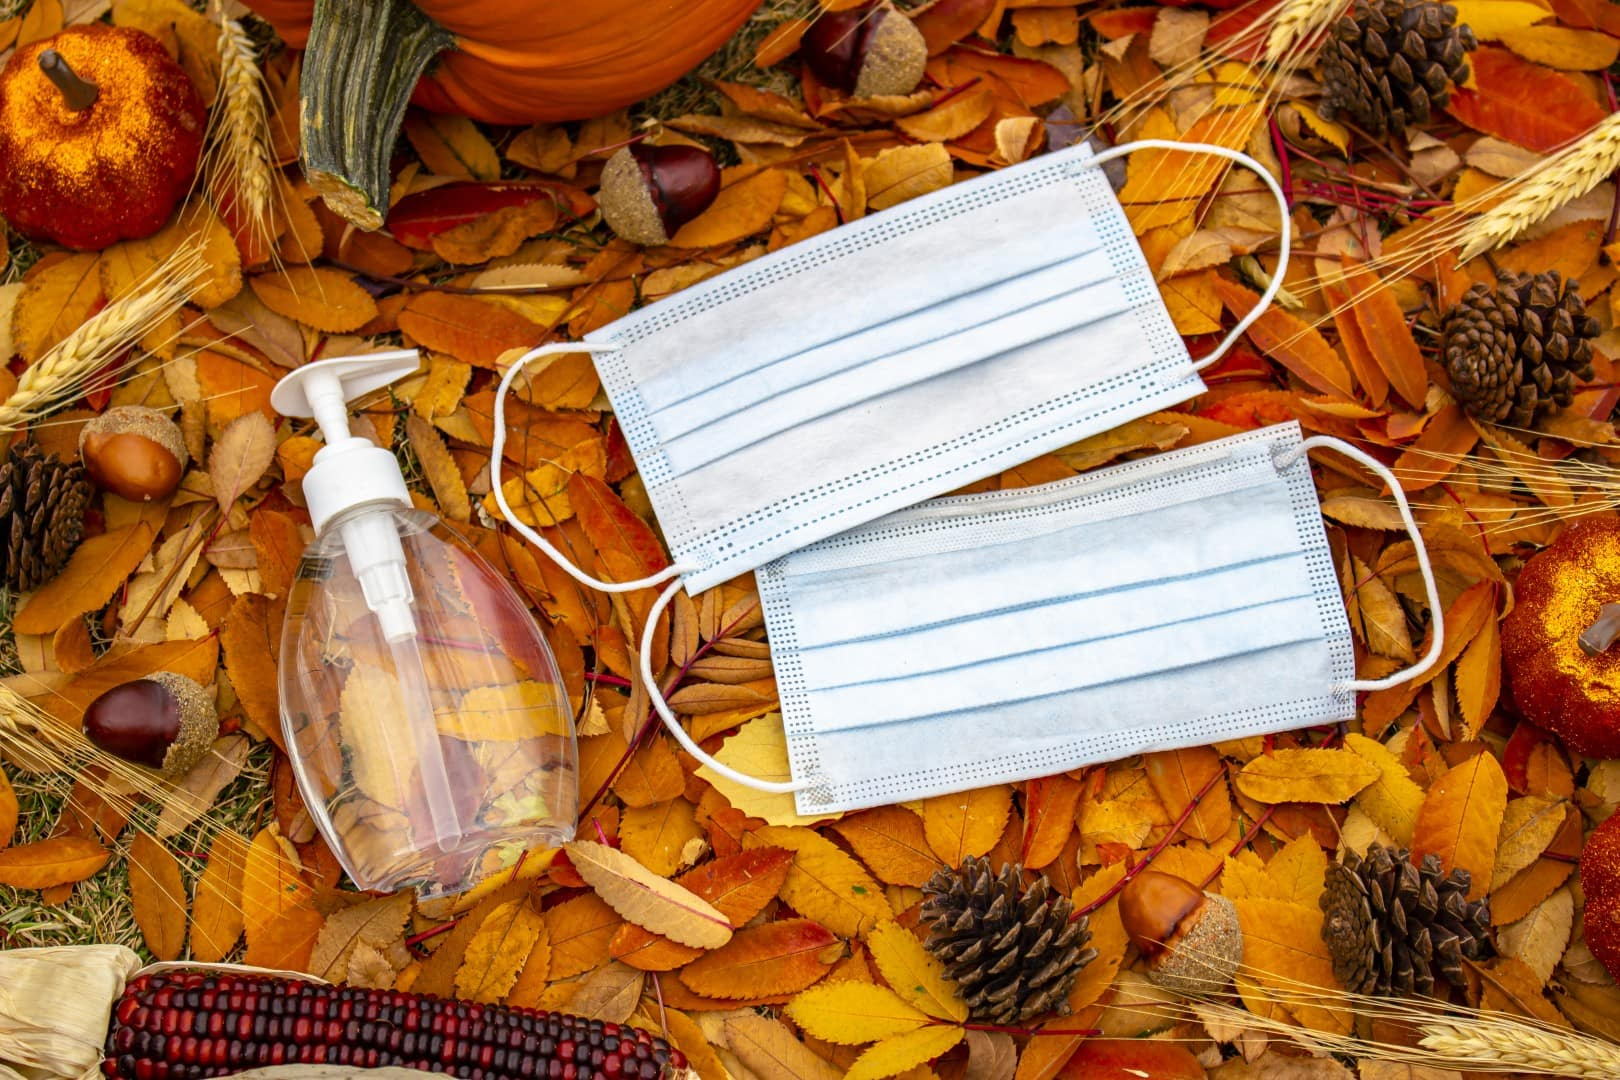 A bottle of a hand sanitizer and face mask on a halloween and thanksgiving background. Concept: Halloween and Thanksgiving during a pandemic, covid-19, coronavirus.